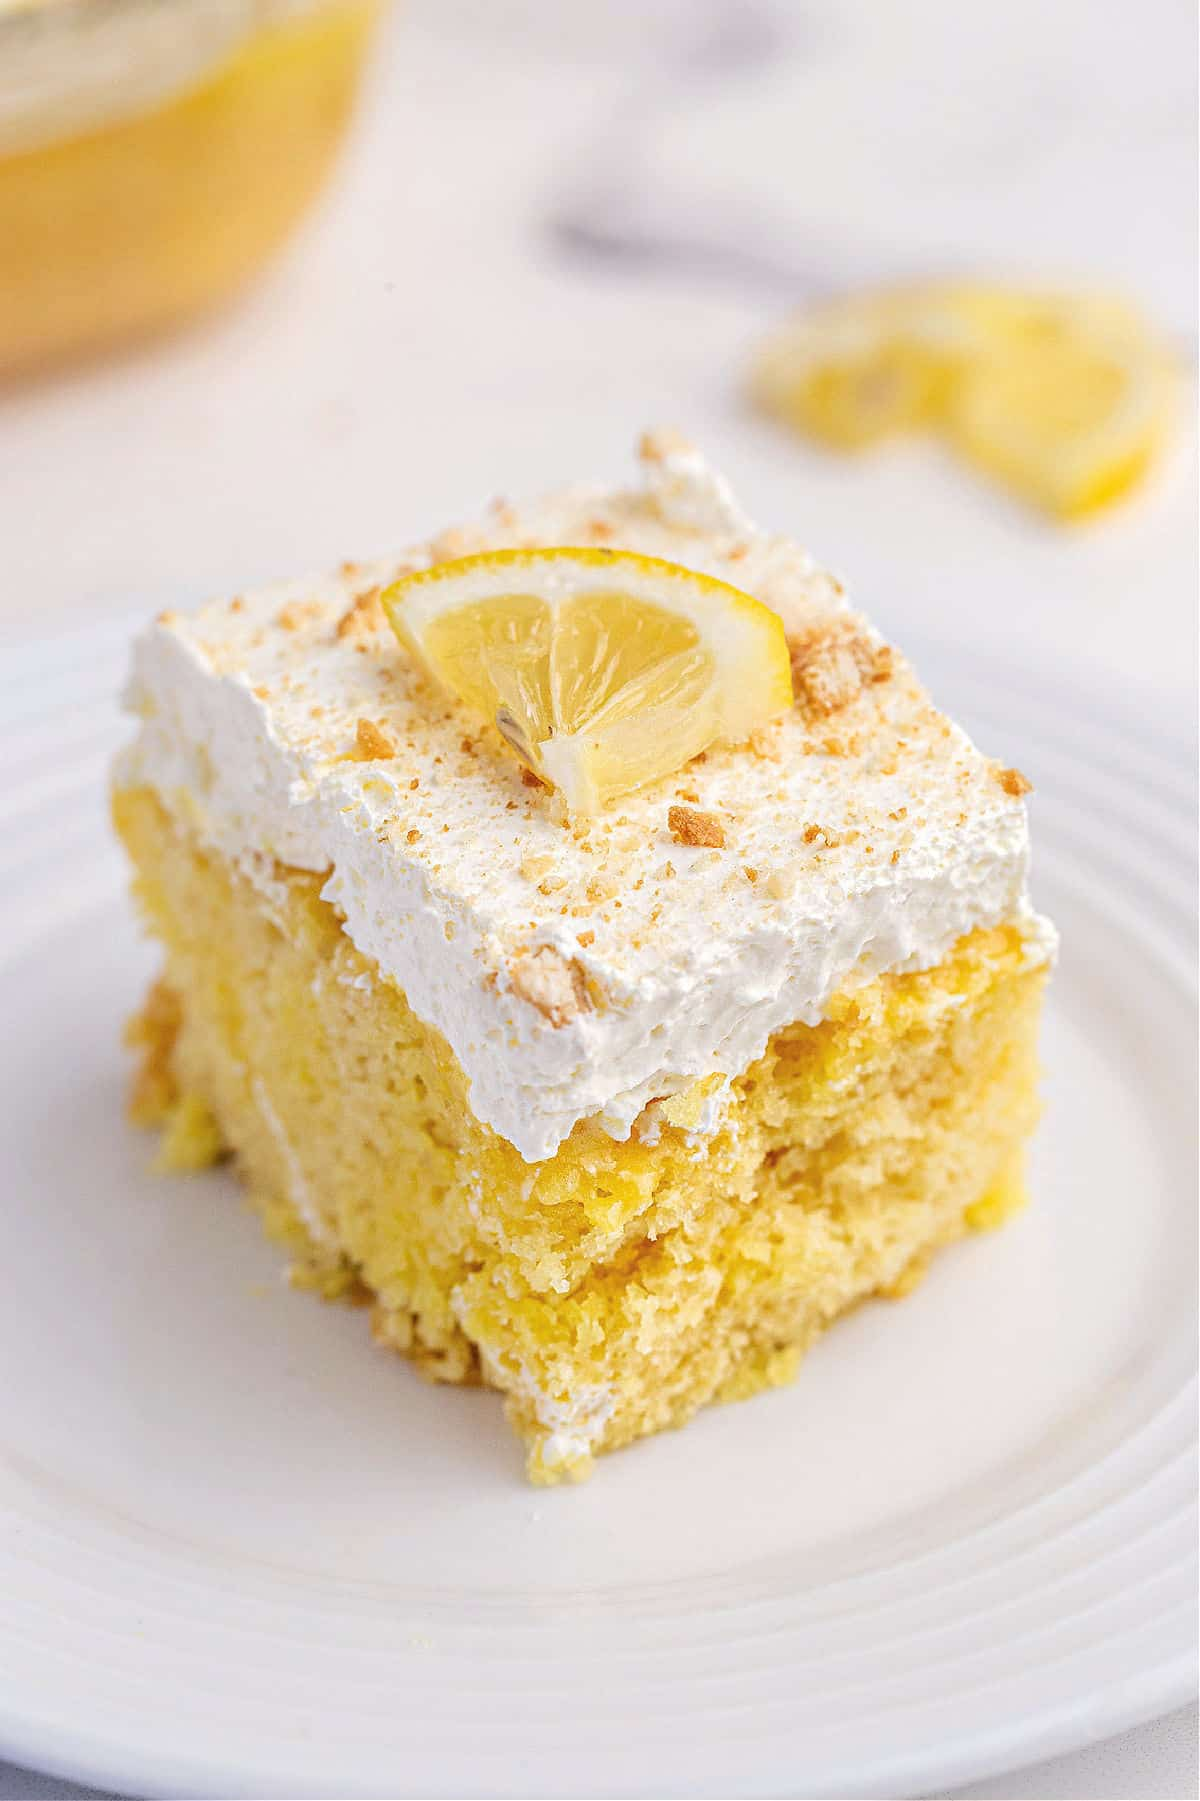 Lemon cake topped with lemon gelatin, cool whip, and nilla wafer crumbs.